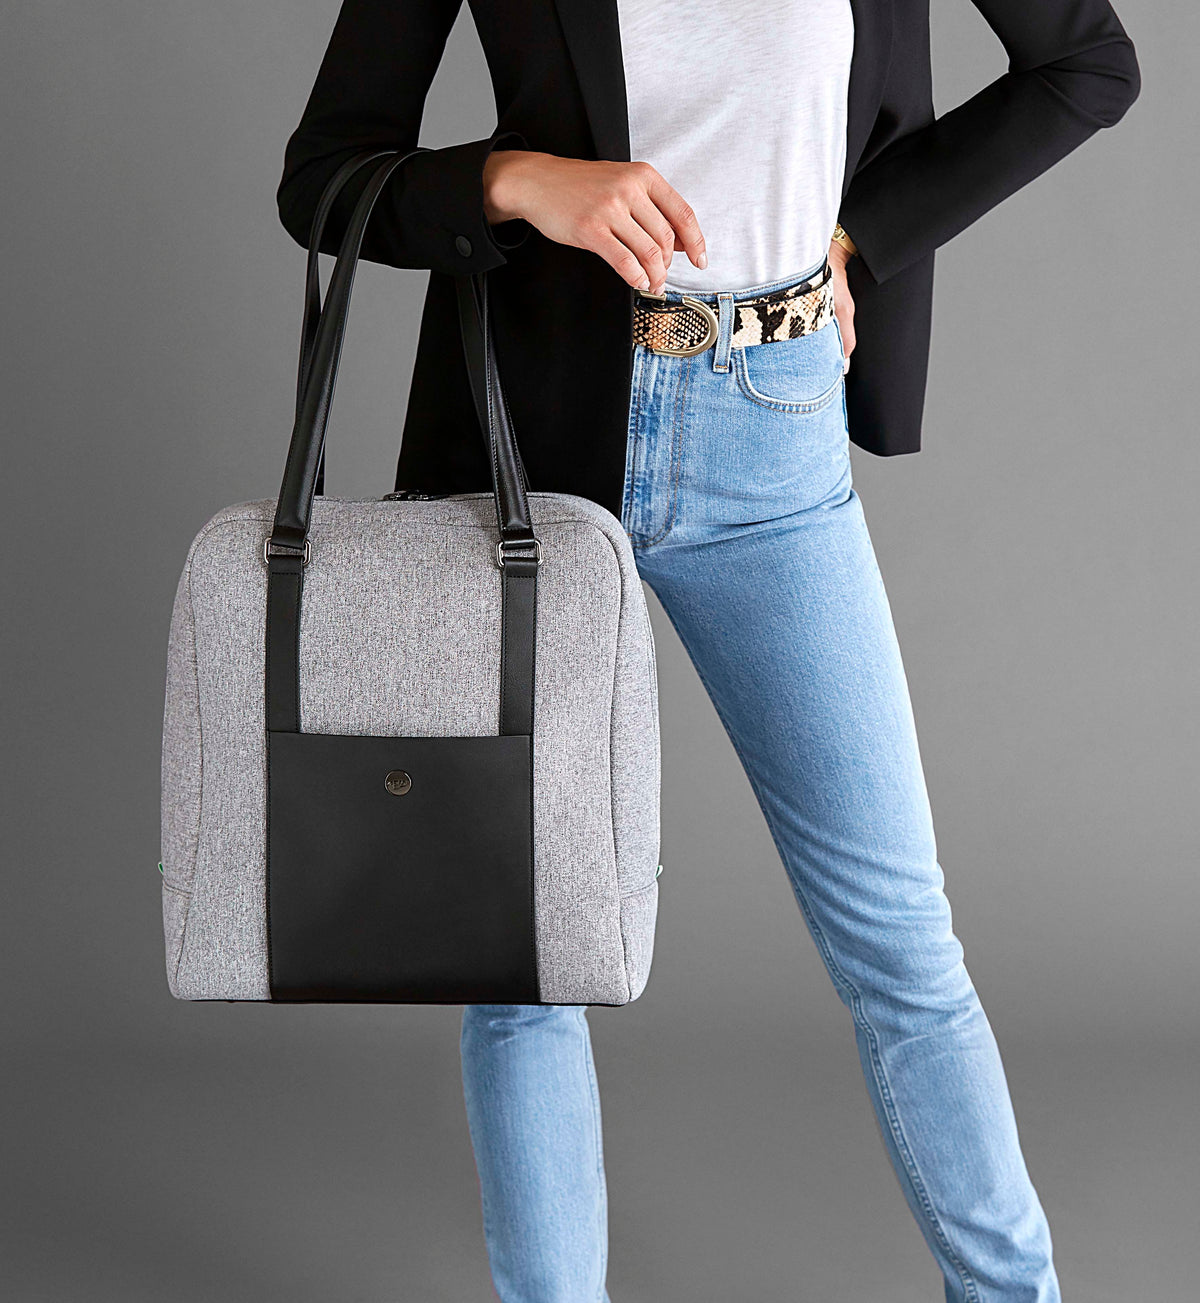 Woman holding stylish neoprene grey and black laptop and gym bag